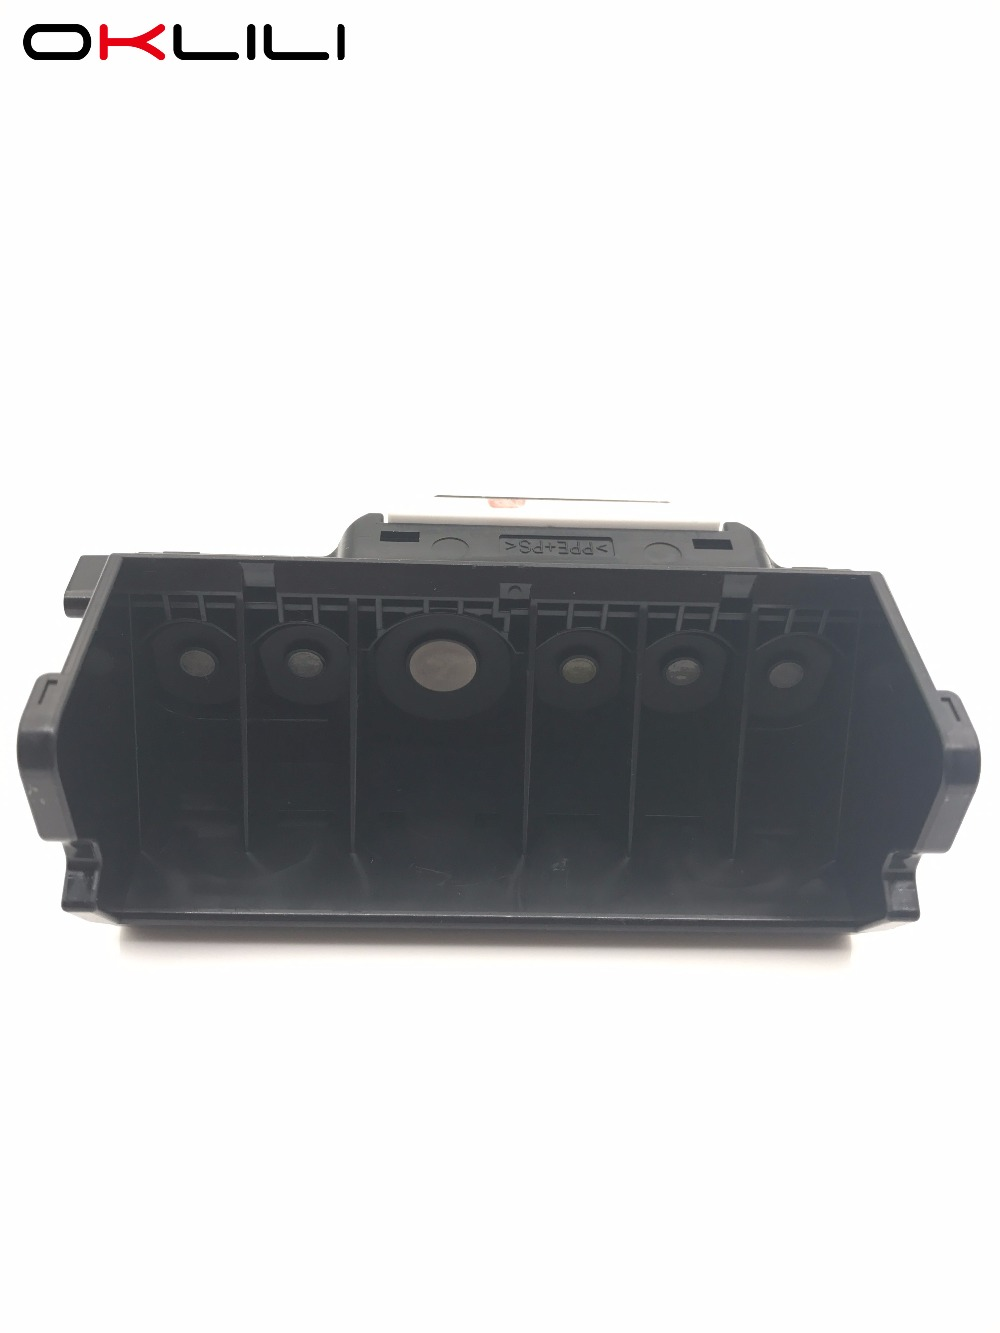 QY6-0078 QY6-0078-000 Printhead Printer Print Head for Canon MP990 MP996 MG6120 MG6140 MG6180 MG6280 MG8120 MG8180 MG8280 MG6250 essence часы essence es6321me 451 коллекция ethnic